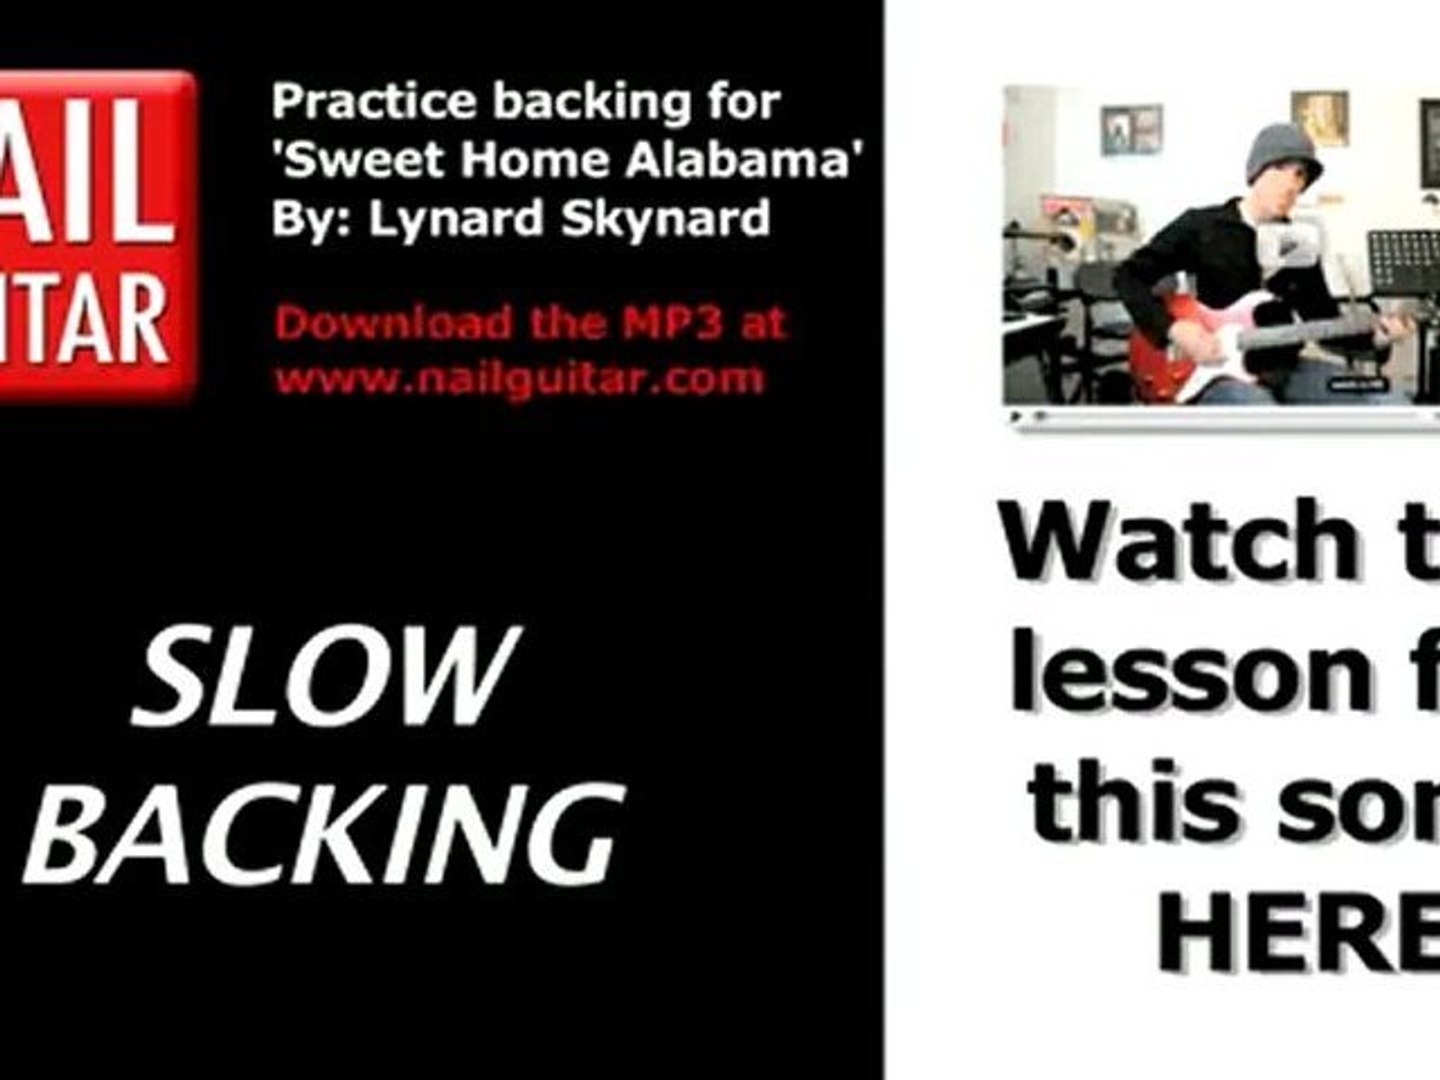 Feb 27, 2016· in this video, we show you the opening riff to sweet home alabama by lynyrd skynyrd! Sweet Home Alabama By Lynard Skynard Play Along Backing Video Dailymotion